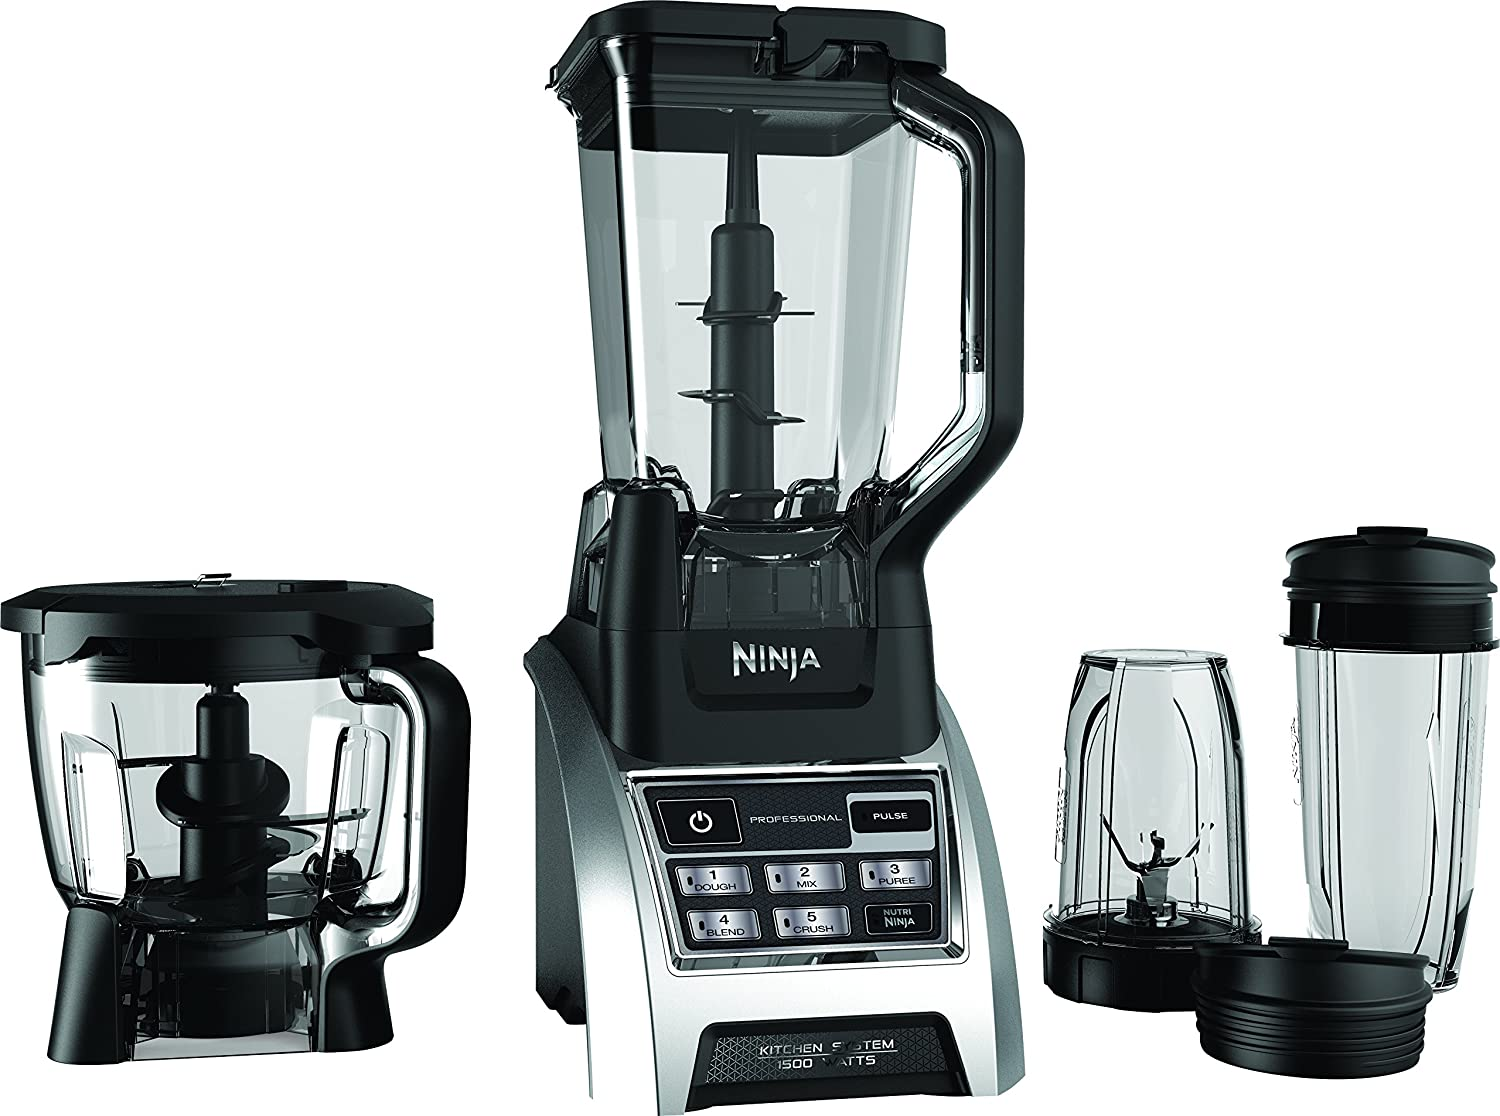 abad mega system professional product shipping overstock today garden kitchen free ninja home